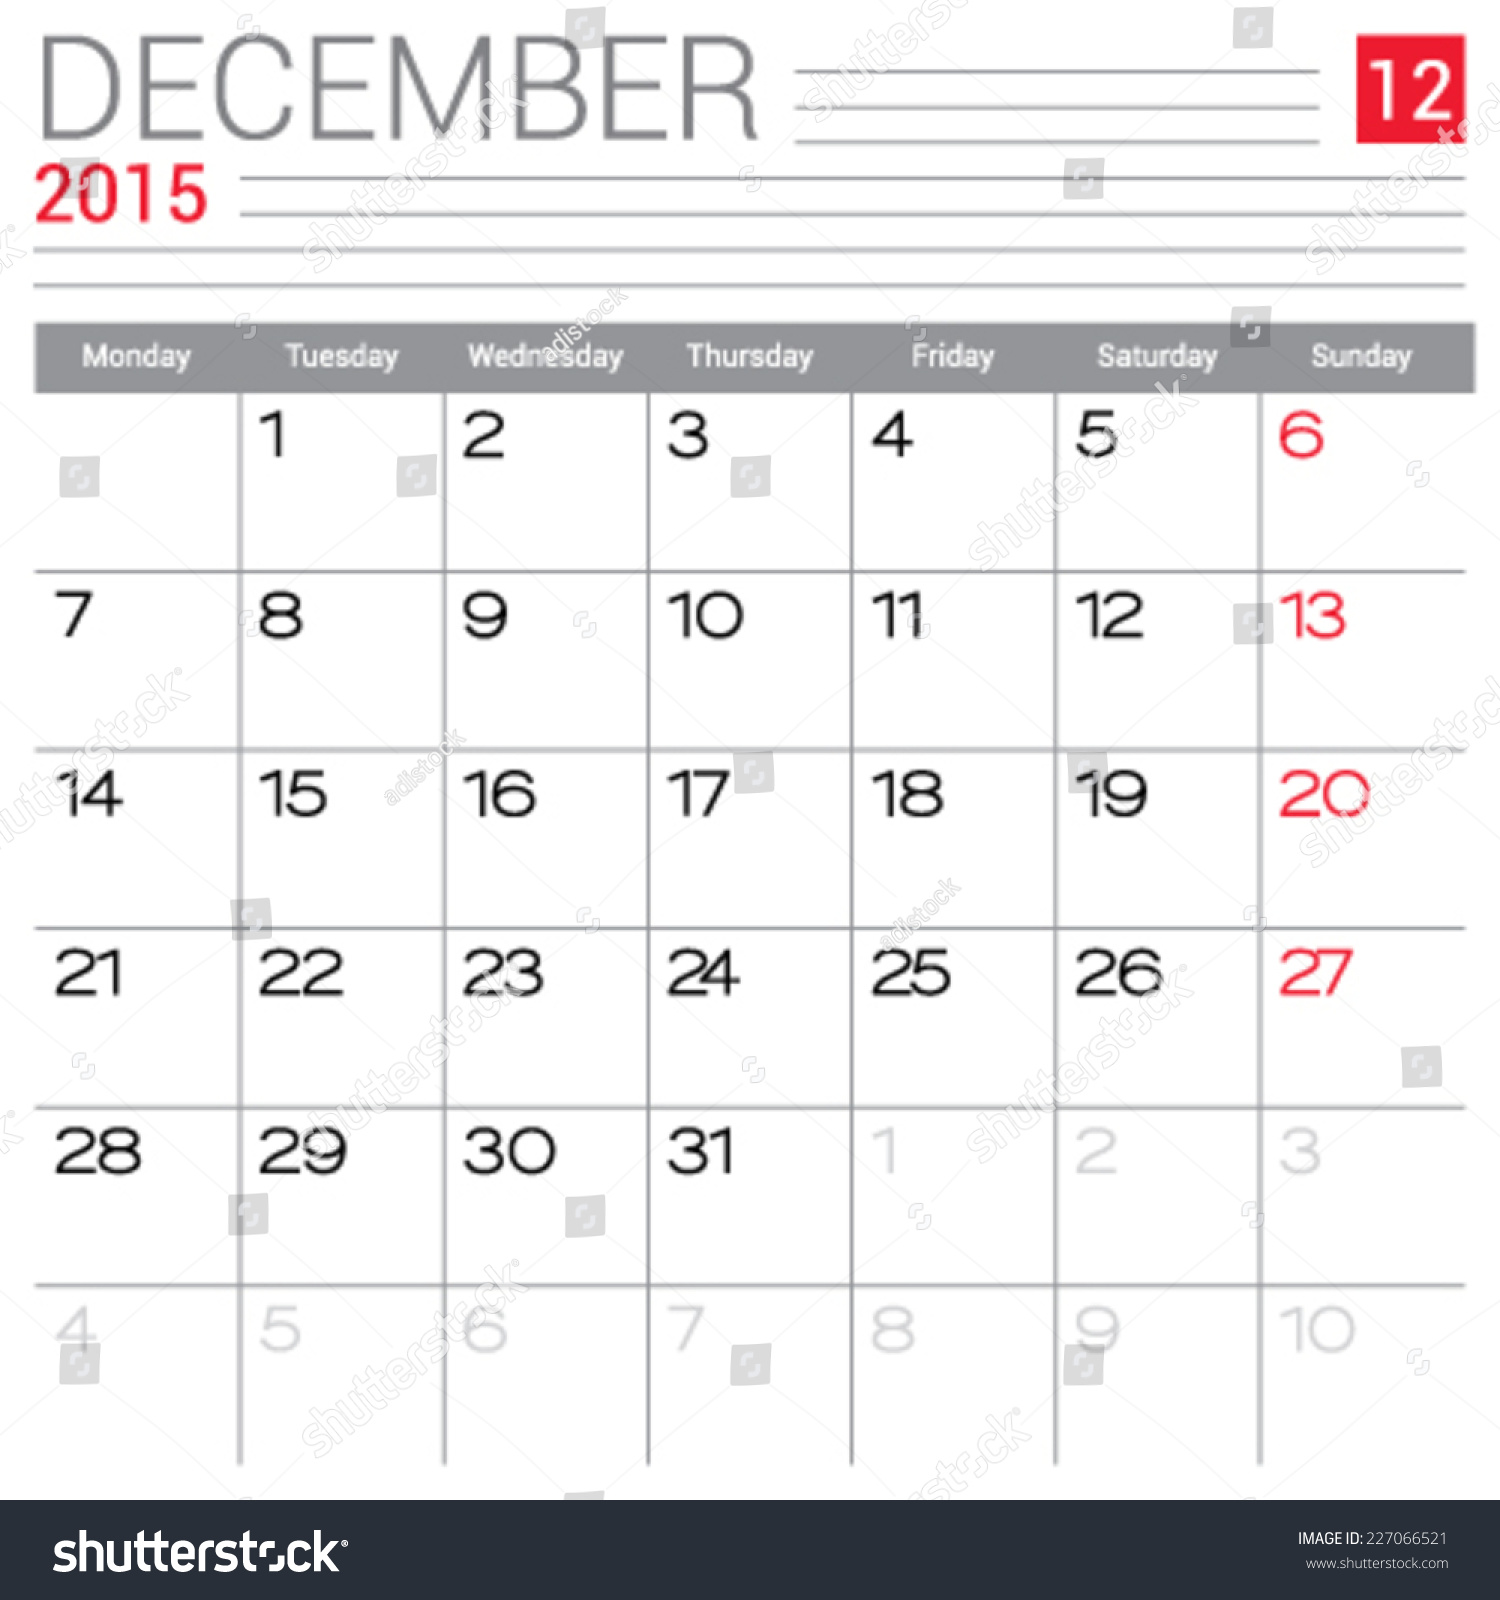 Blank Calendar Svg : December calendar vector design template simple